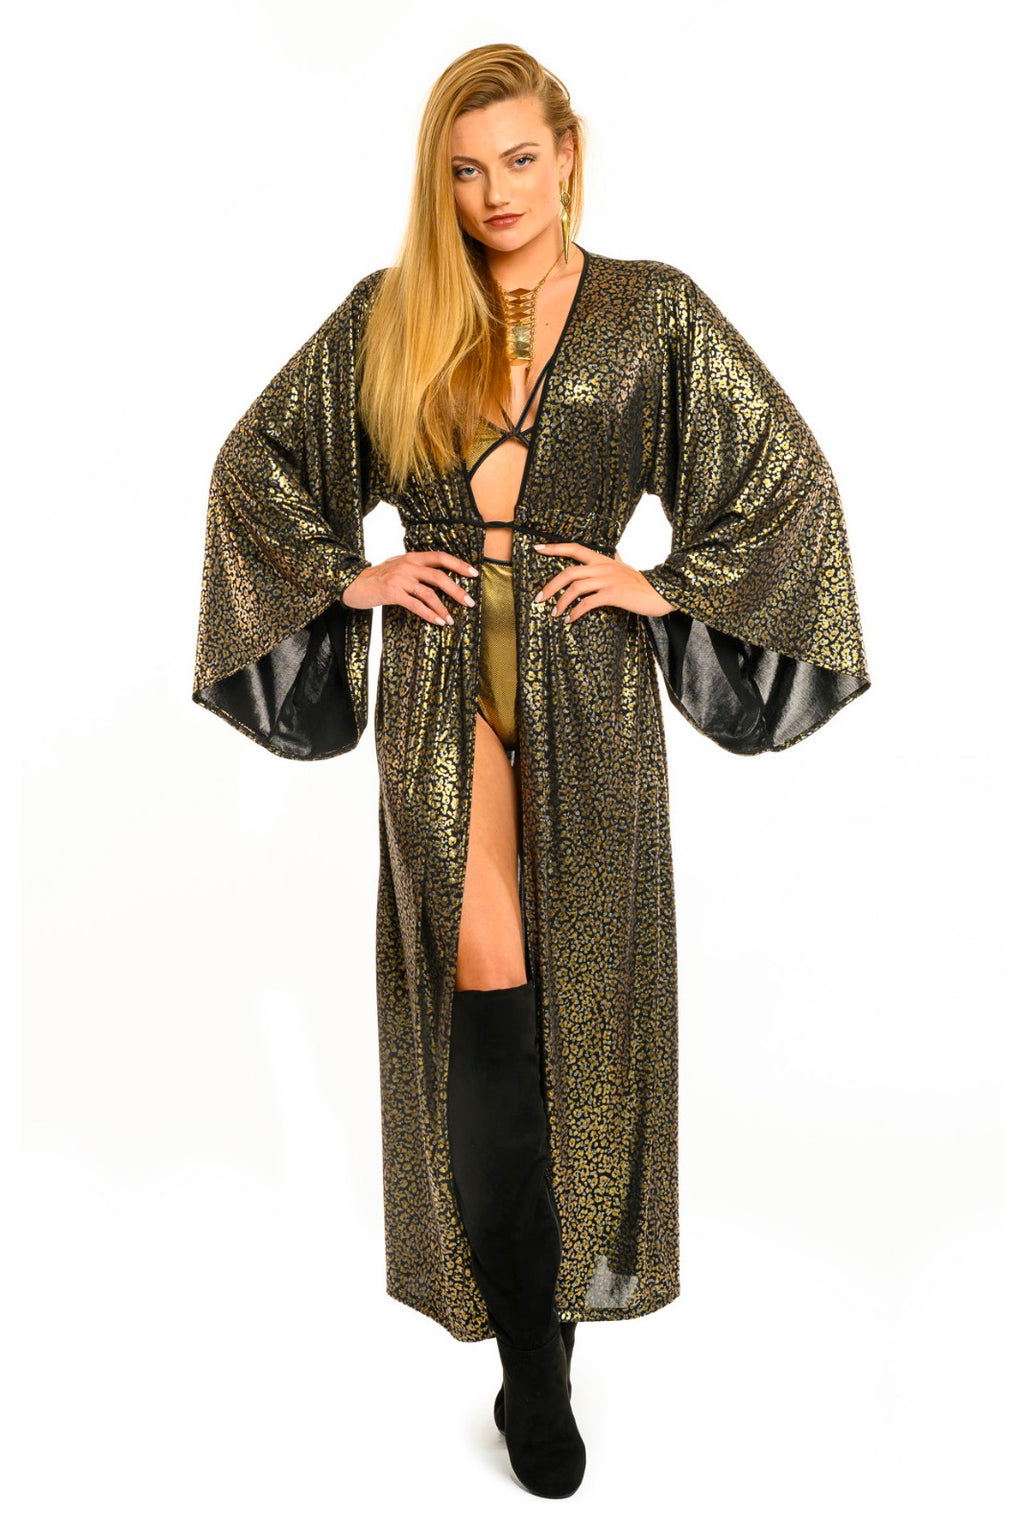 Mixed Metallic Cheetah Gemini Leisure Robe